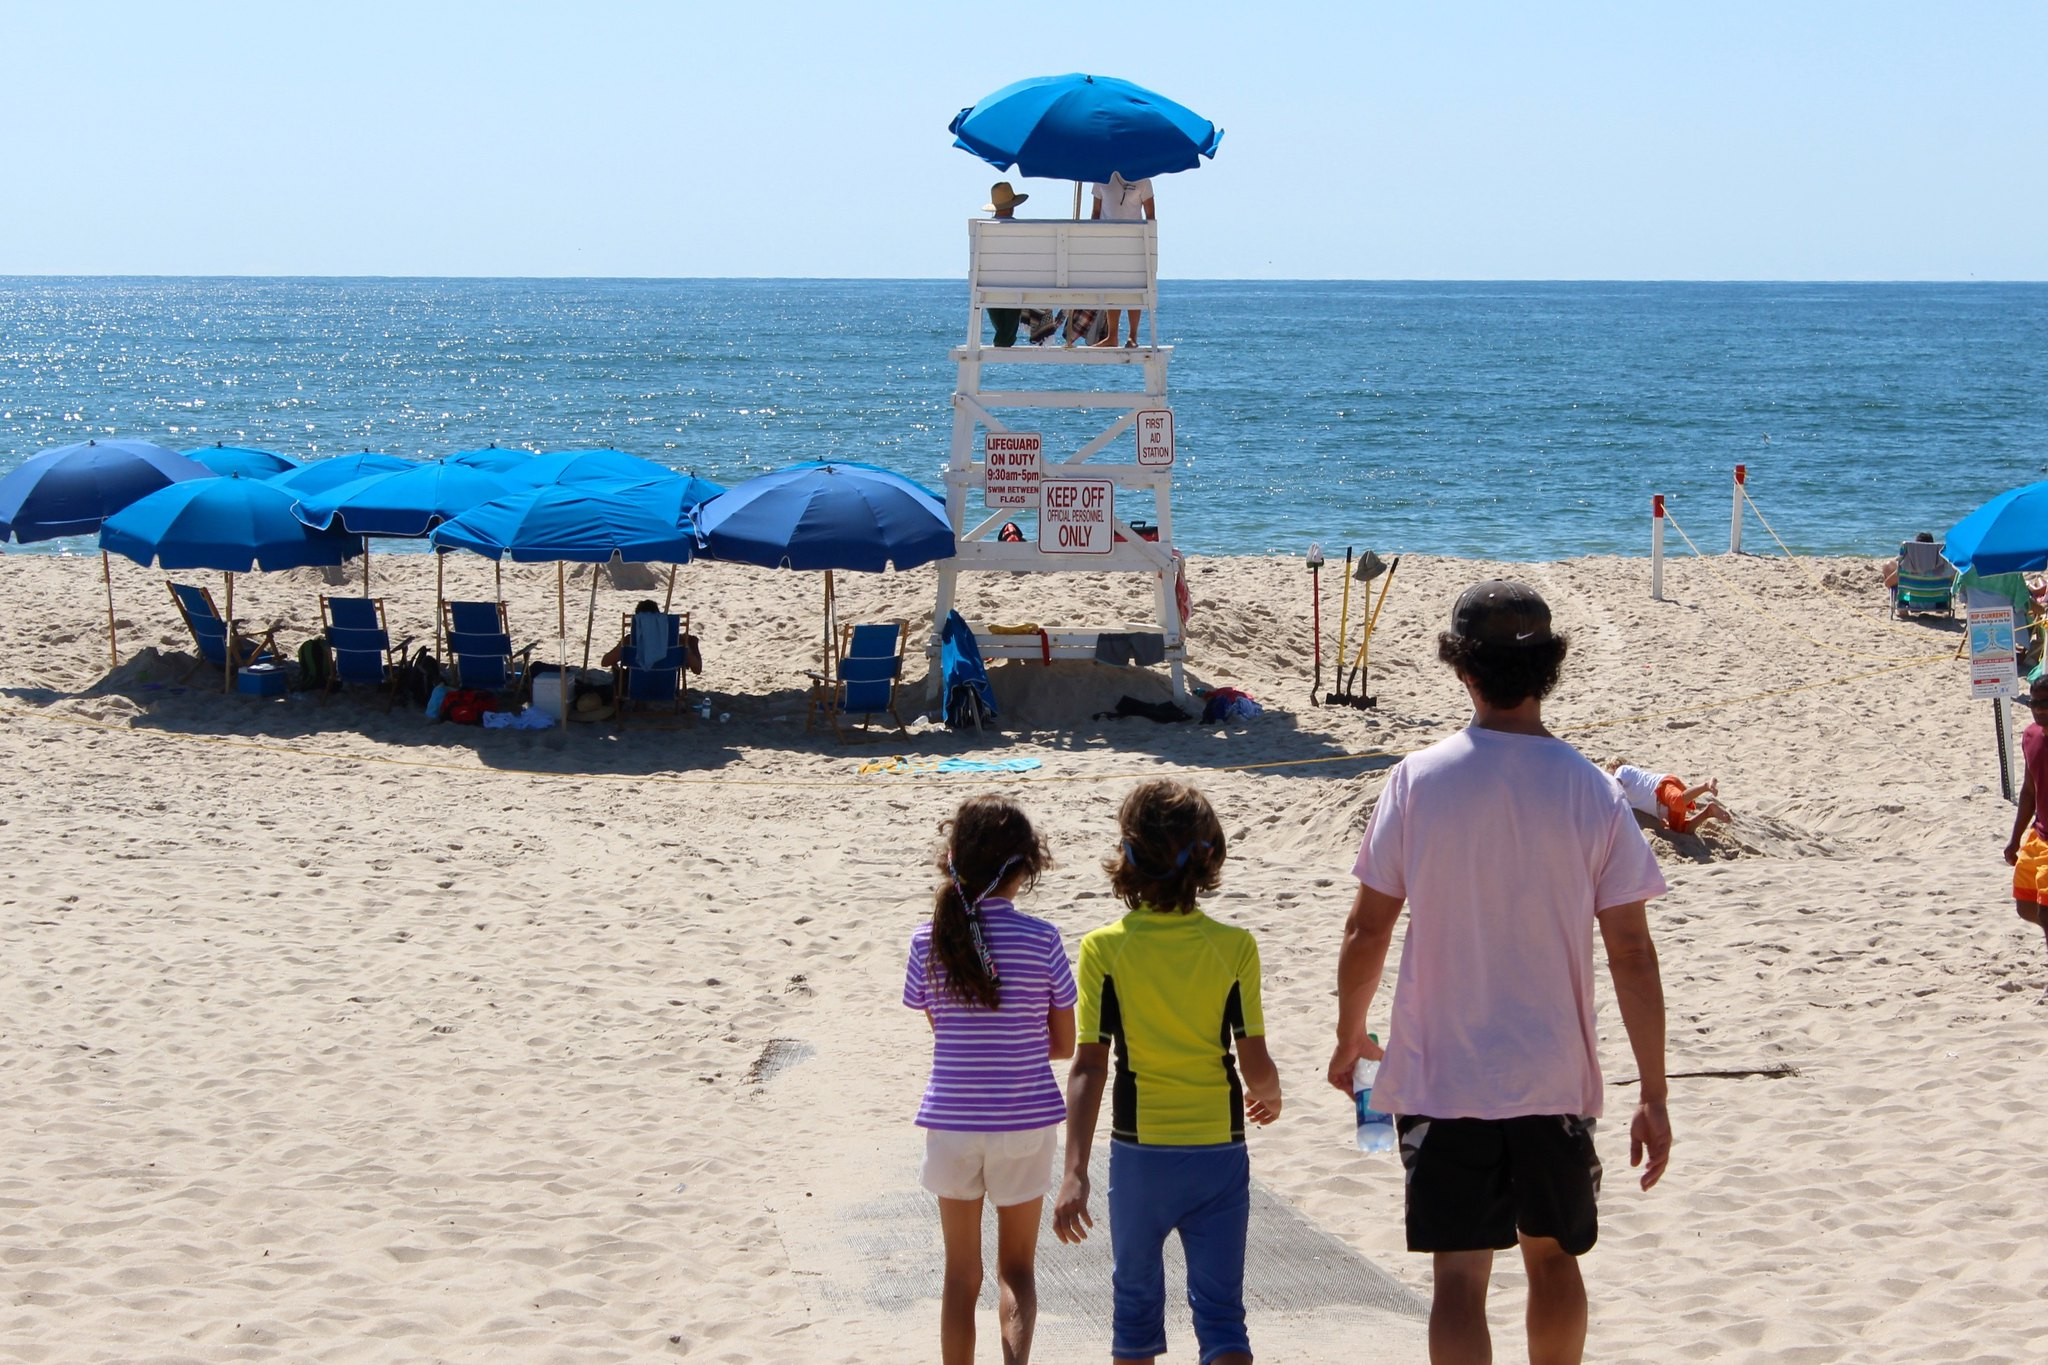 Two children and a man look out at the ocean and a life guard's hut